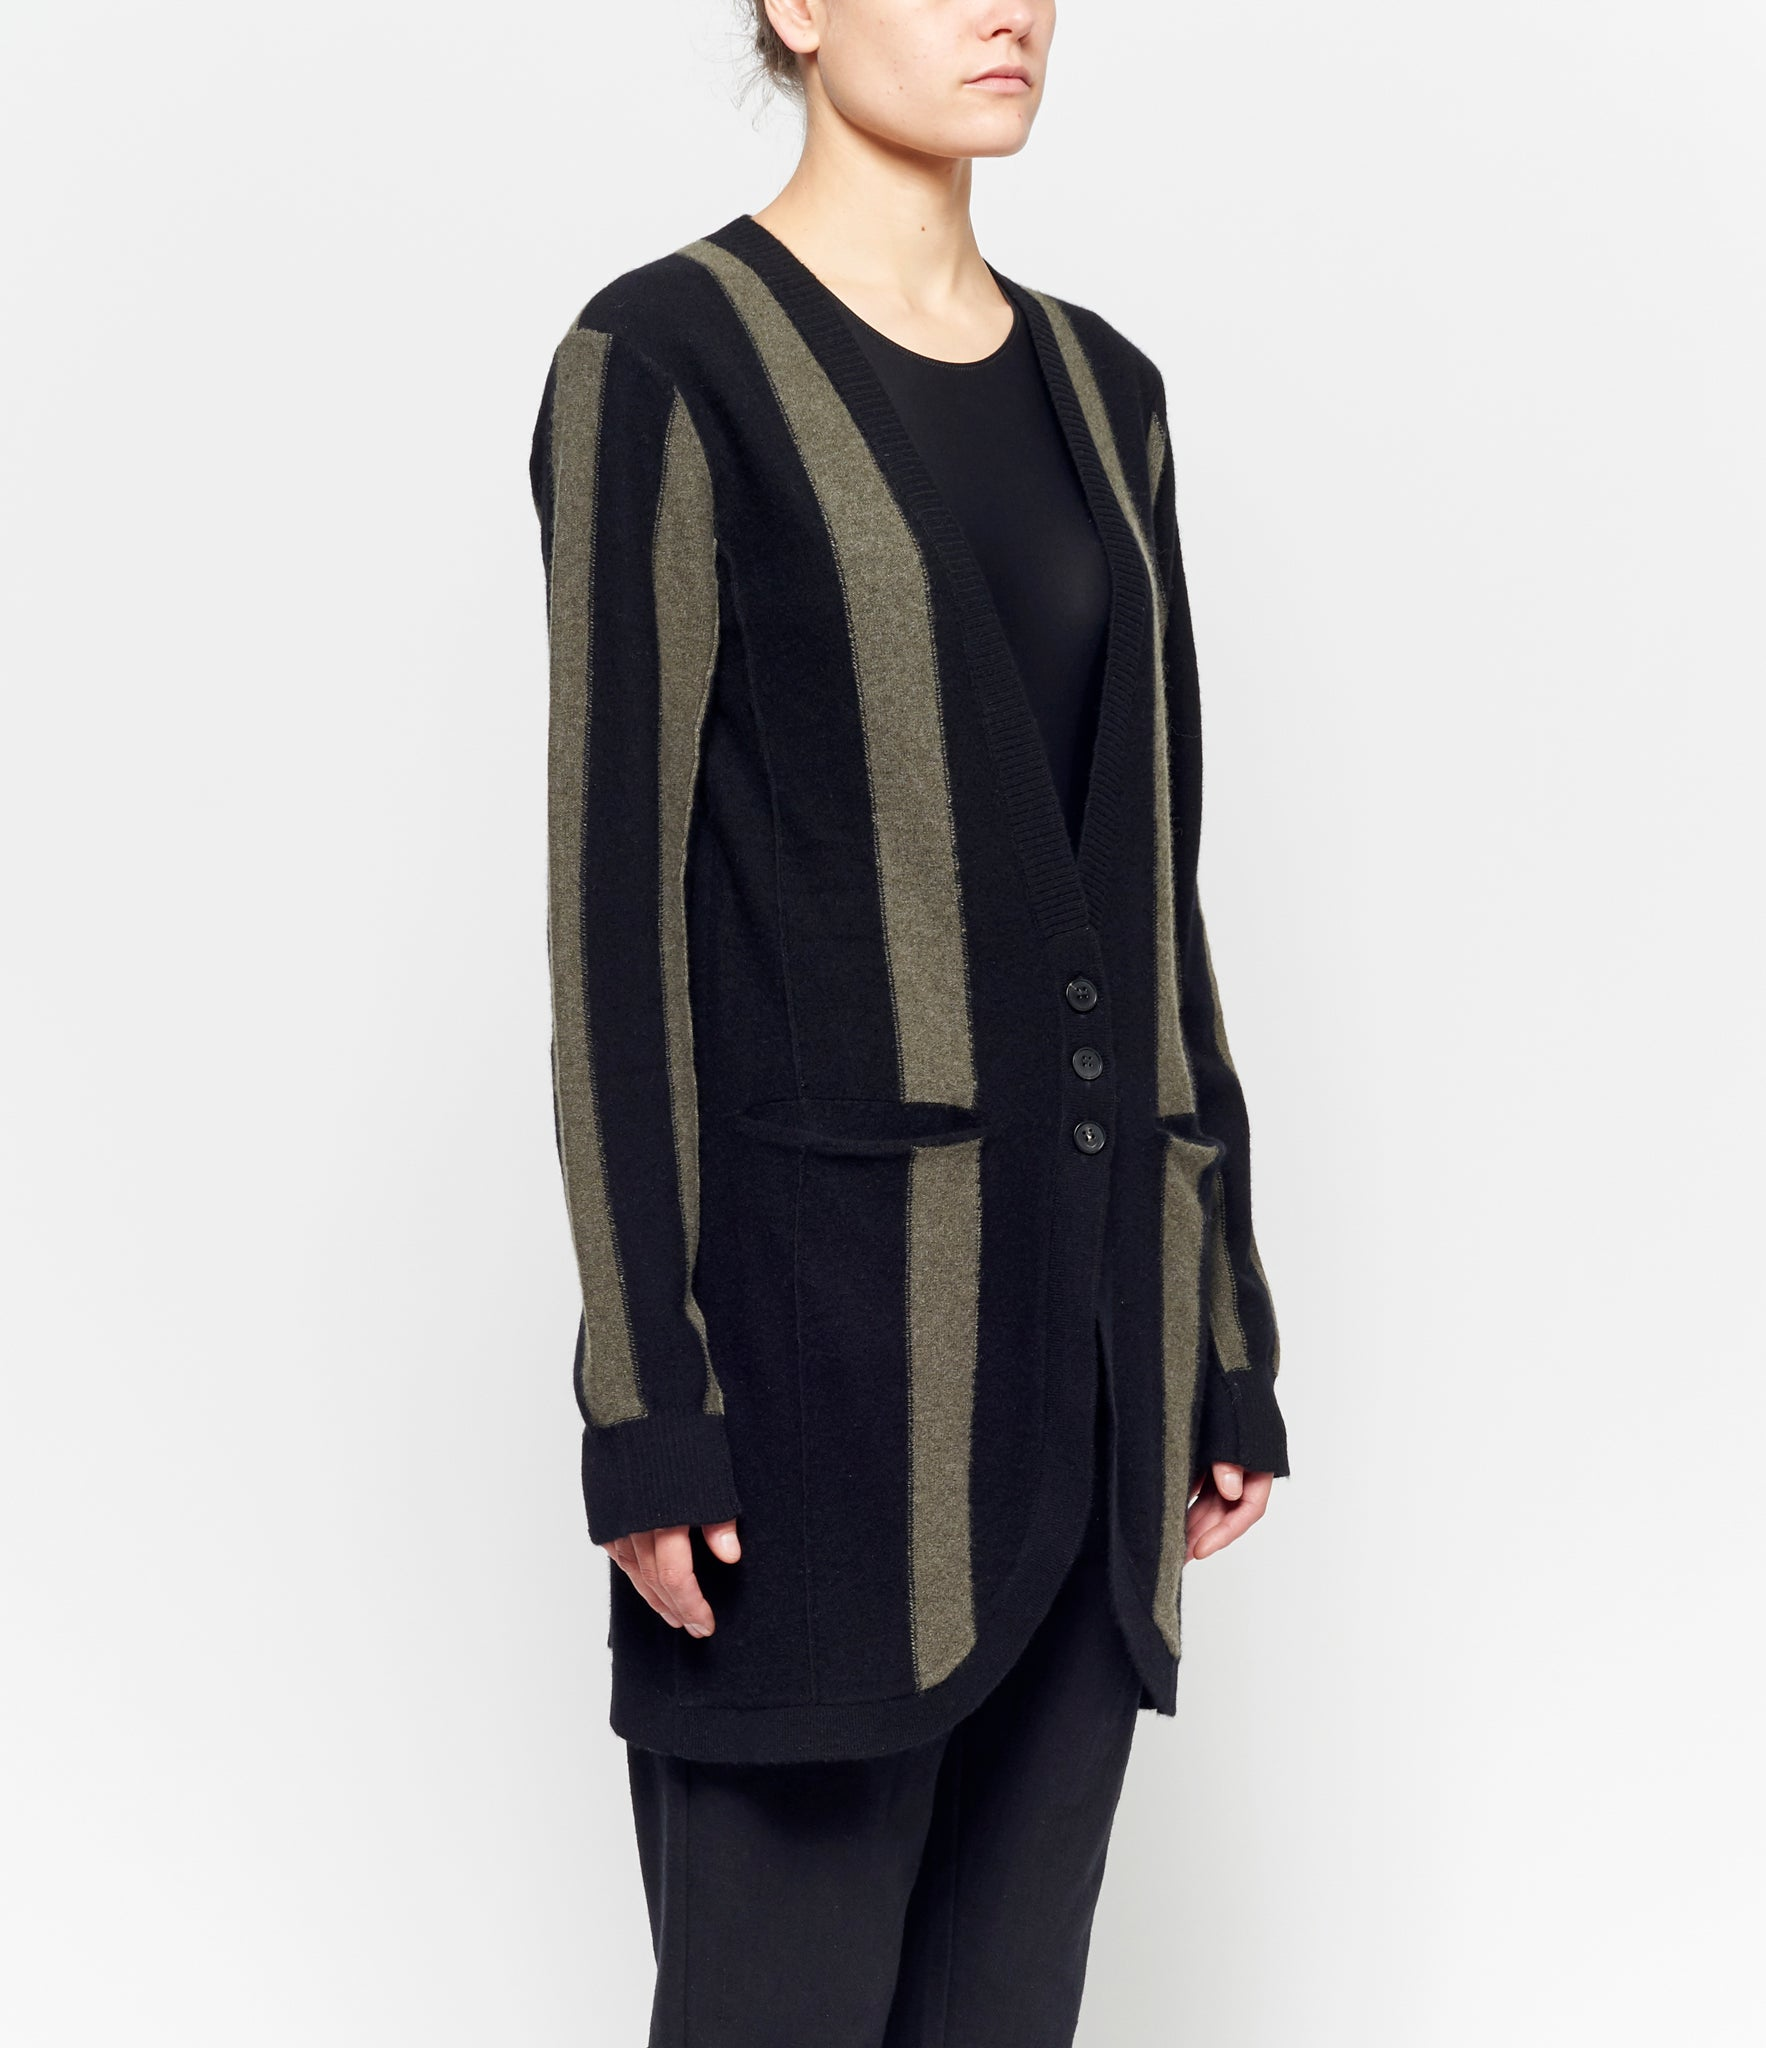 Aleksandr Manamis Striped Long Cardigan